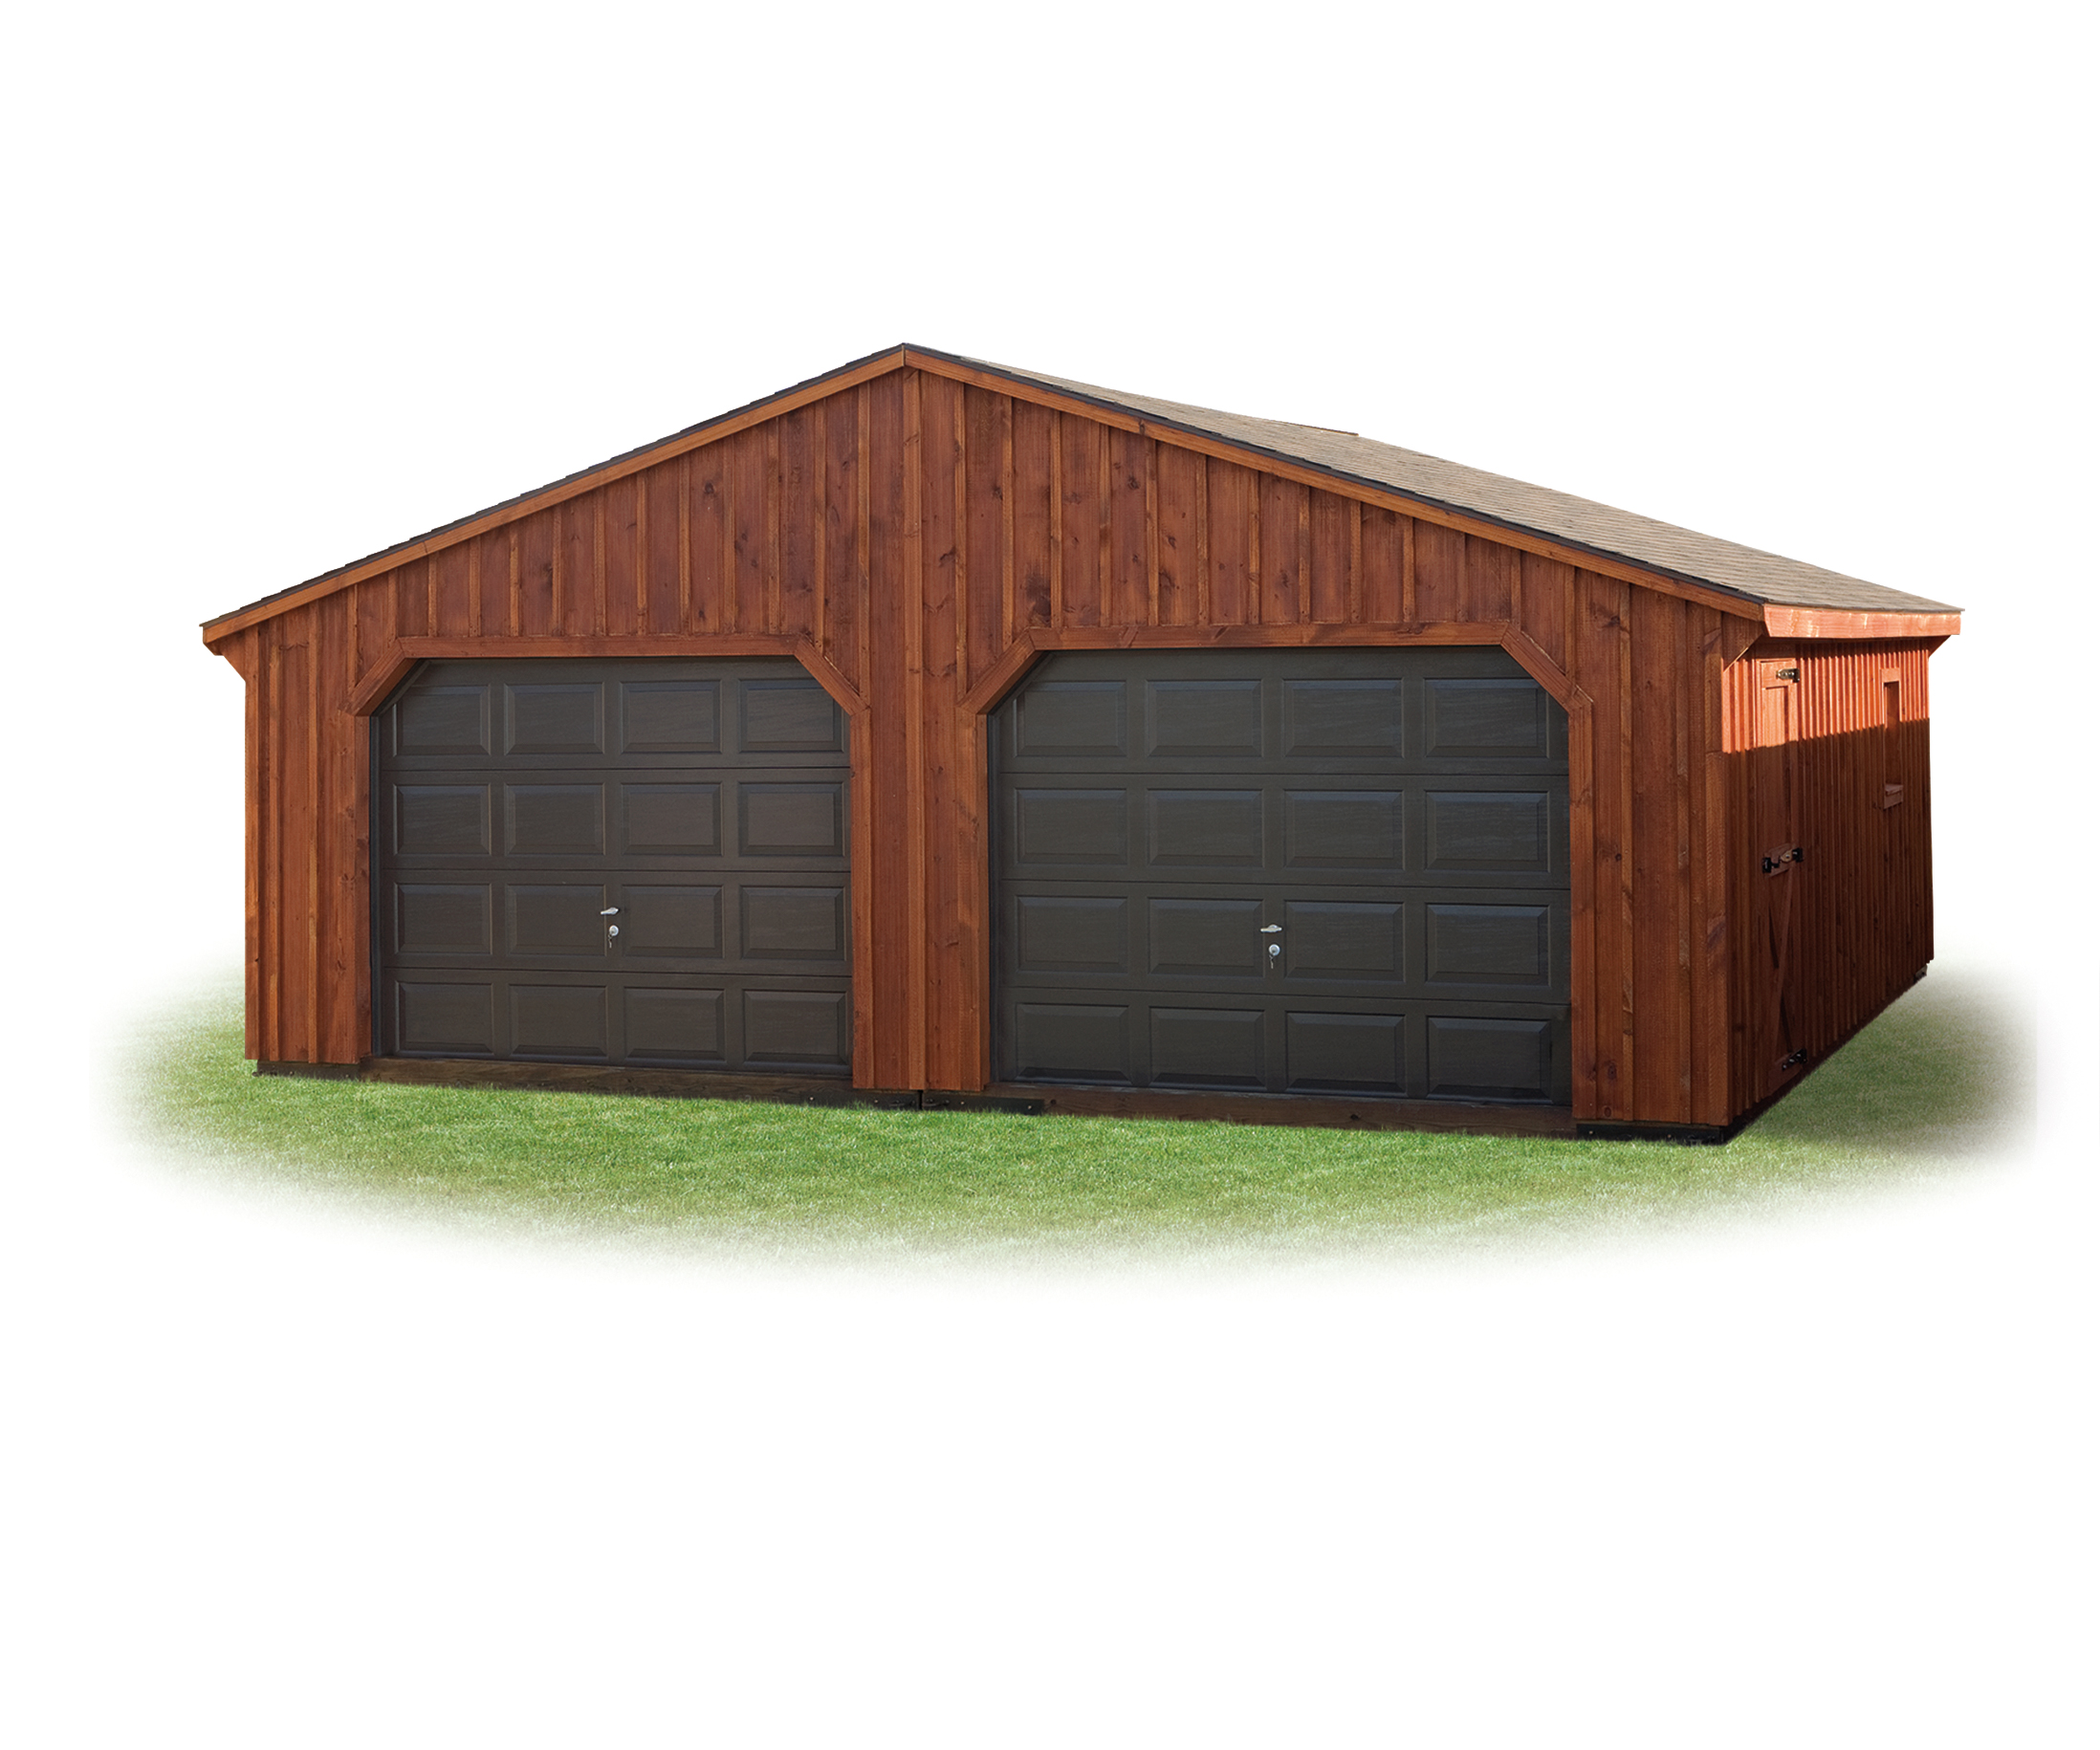 24 x 24 double wide garage amish sheds from bob foote for 10 wide garage door